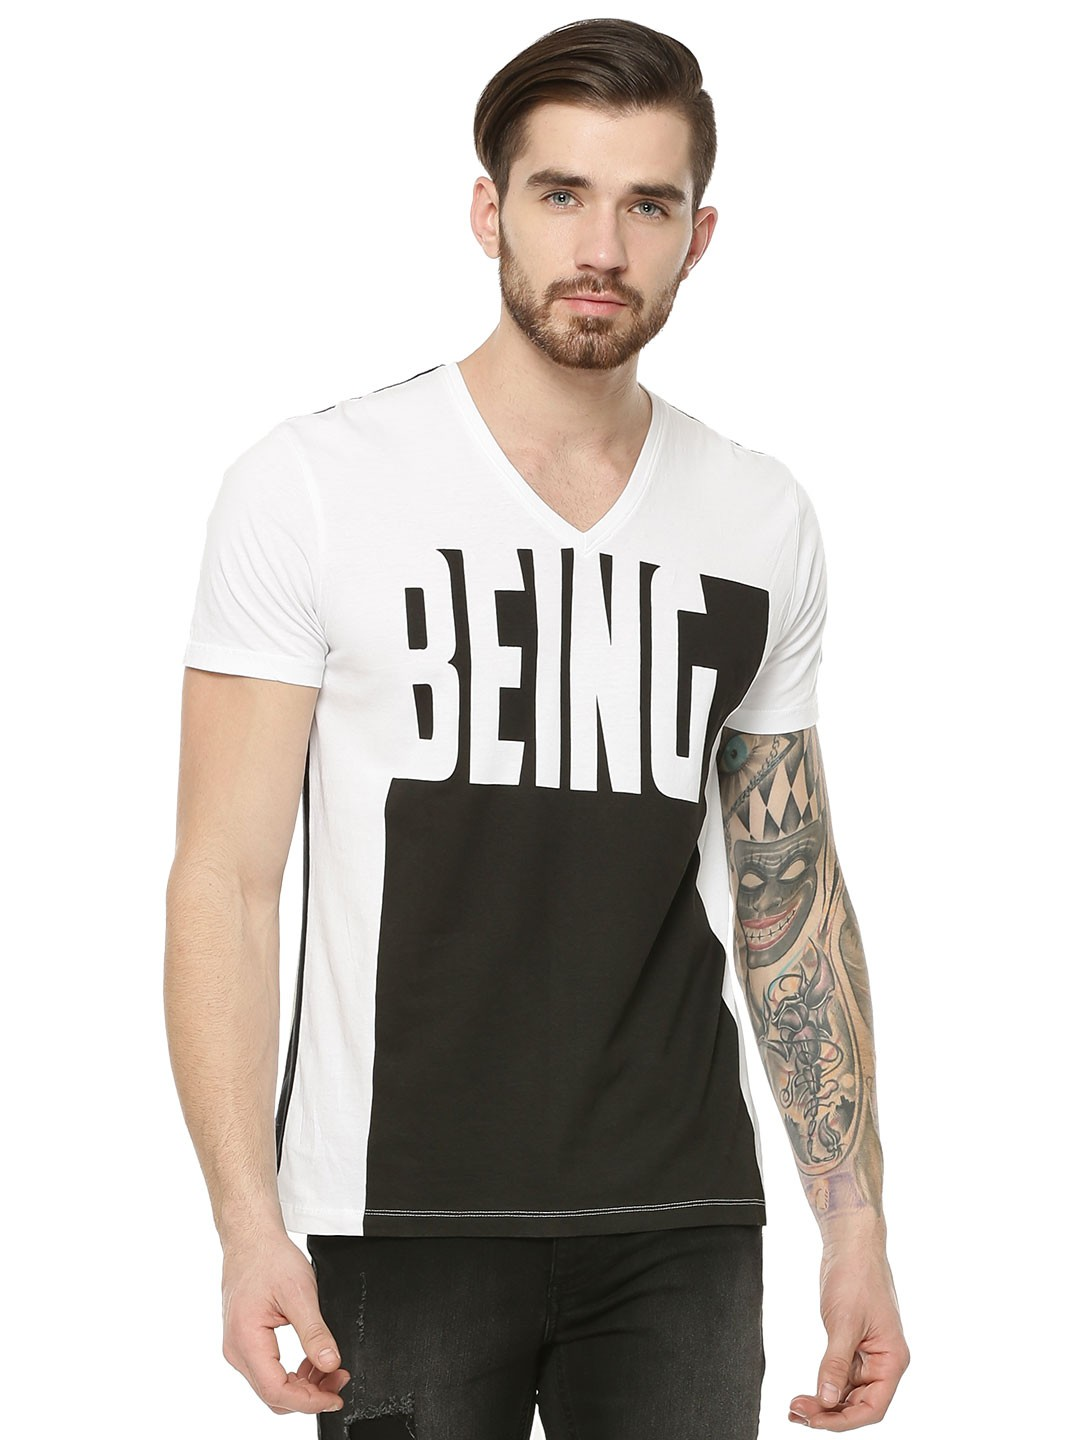 Buy being human contrast text v neck t shirt for men men for Being human t shirts buy online india